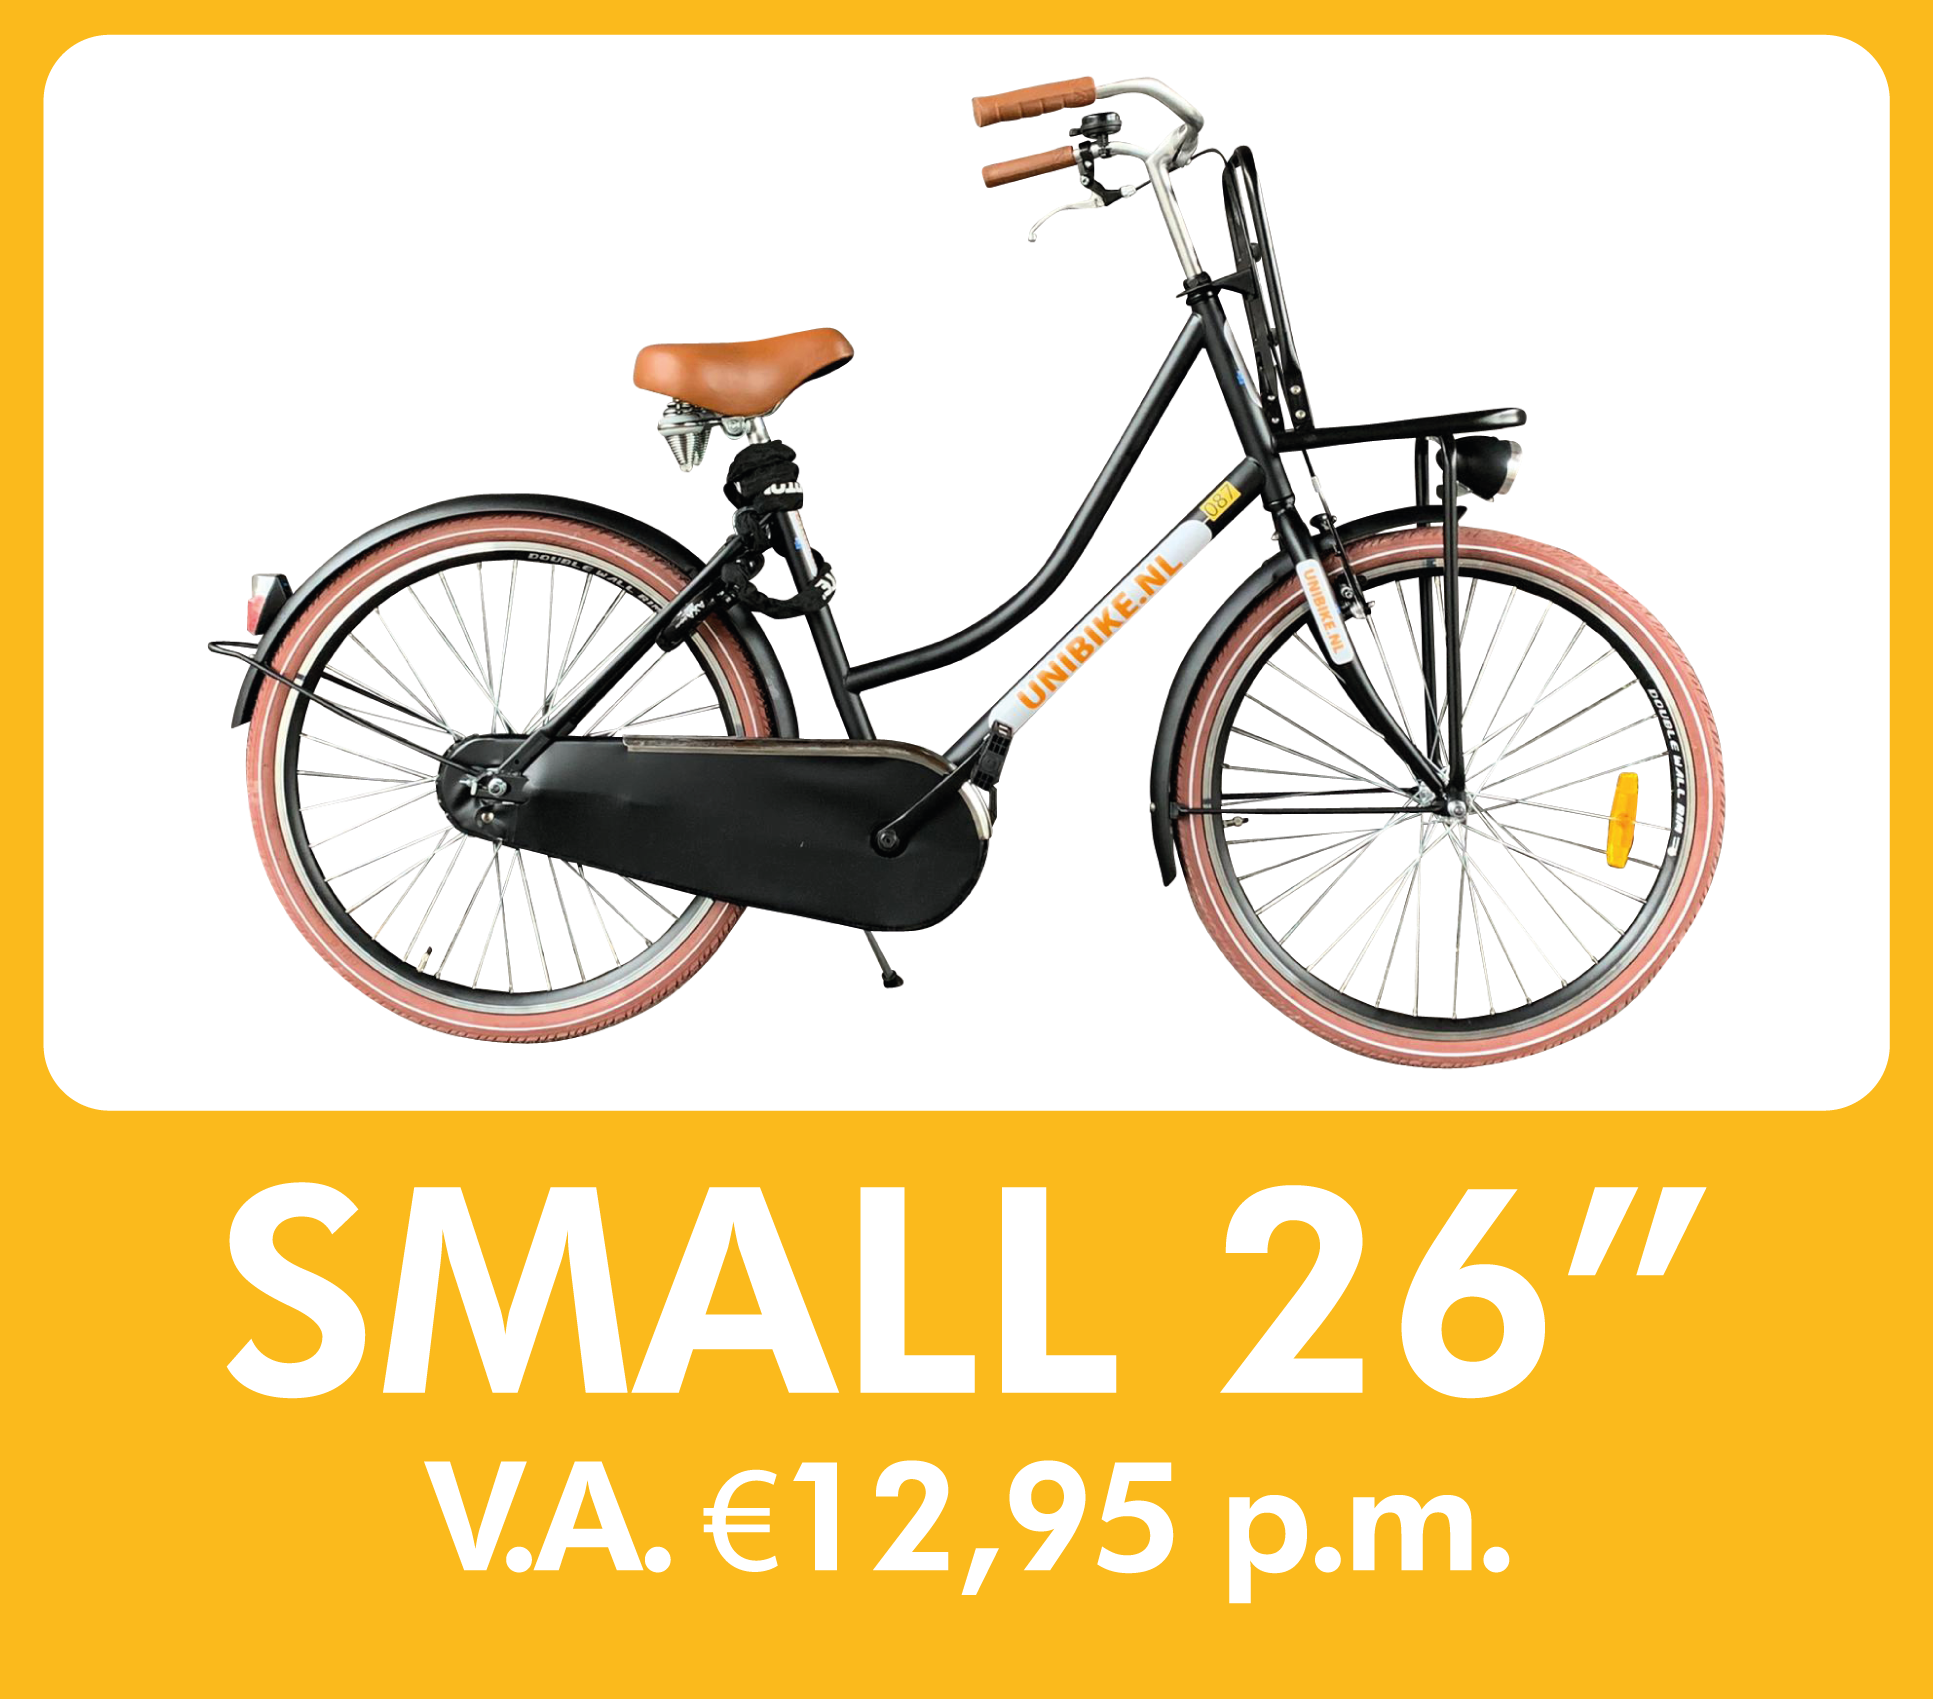 Fiets leasen - small 26 inch